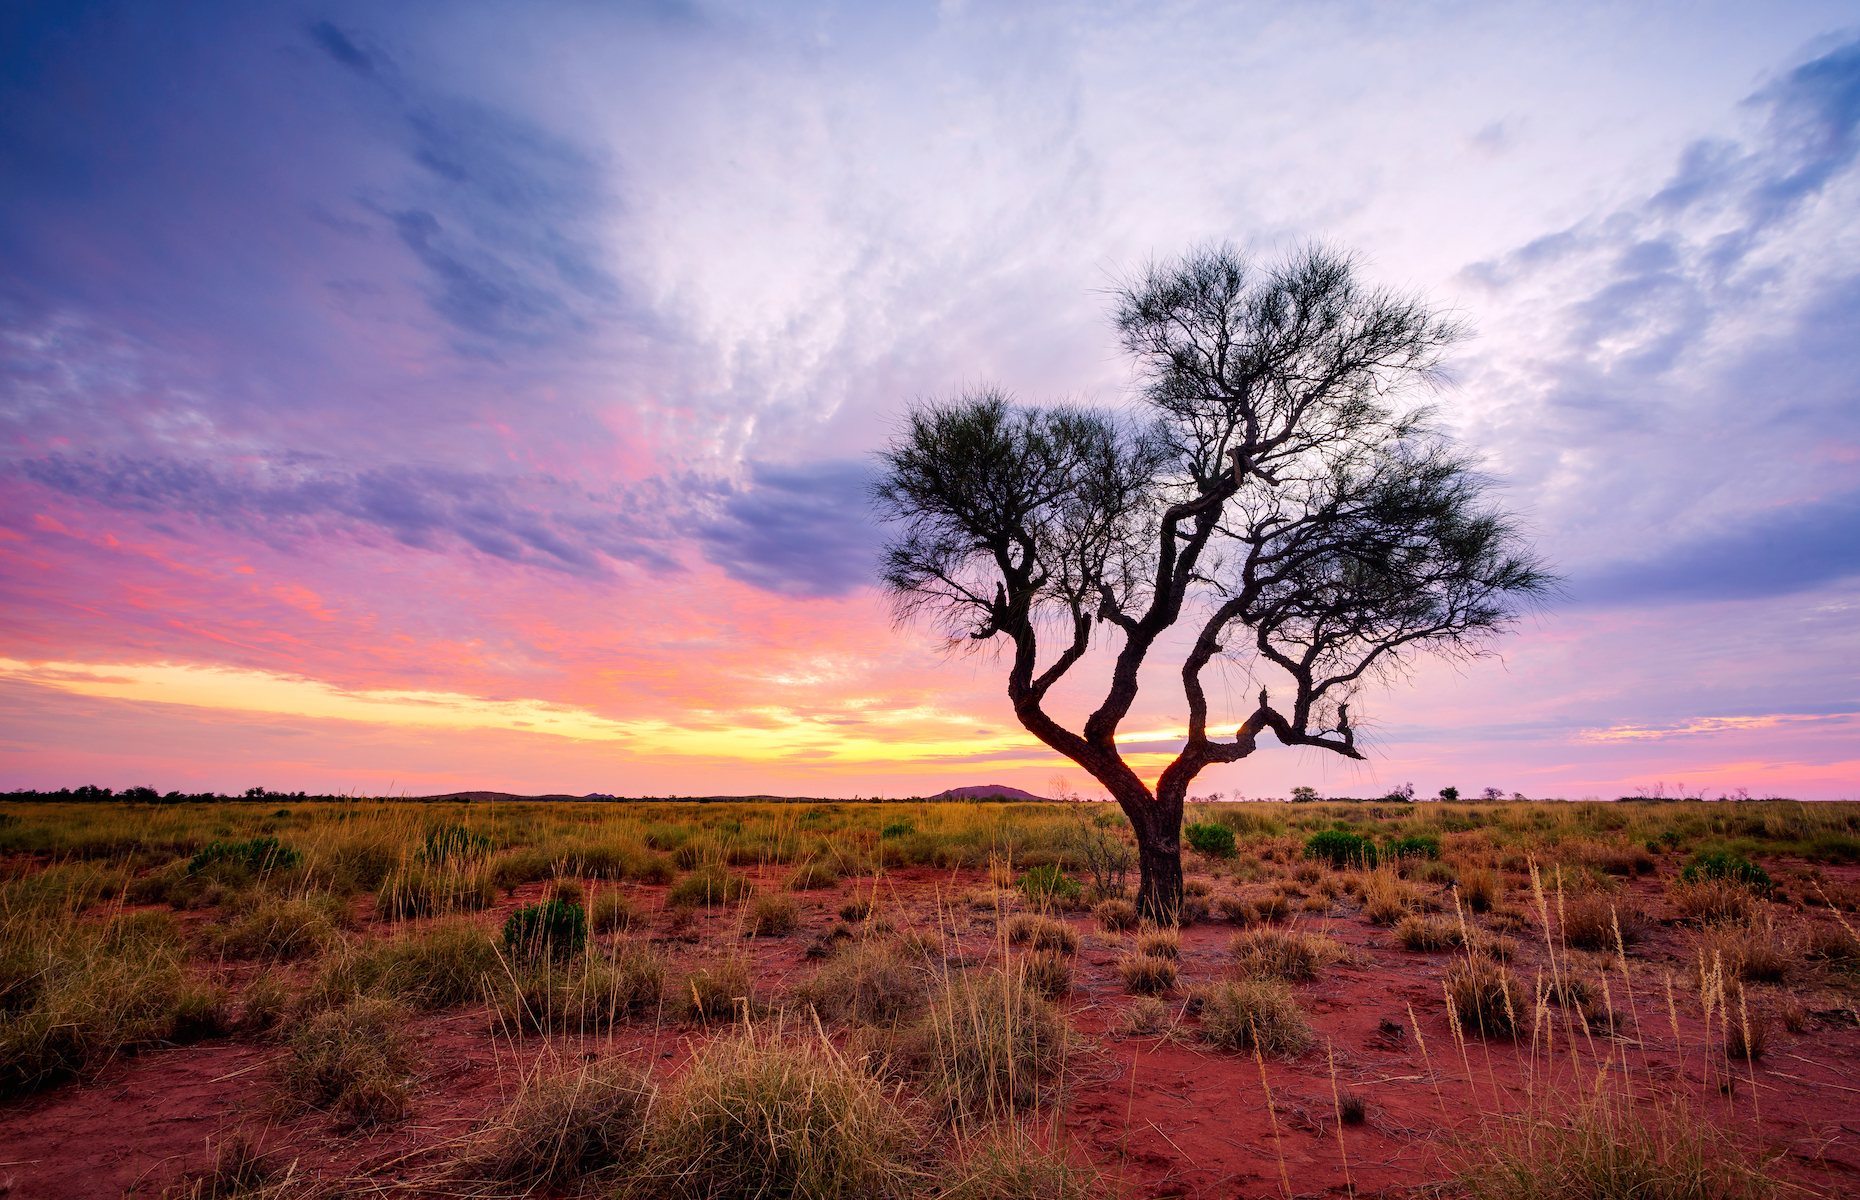 Slide 3 of 21: This Hakea tree, native to the country, stands tall in the famed Australian Outback. Known for its red soils and extreme climate, the Outback spans over 70% of the continent and supports a diverse ecosystem of plants, animals, and people alike.